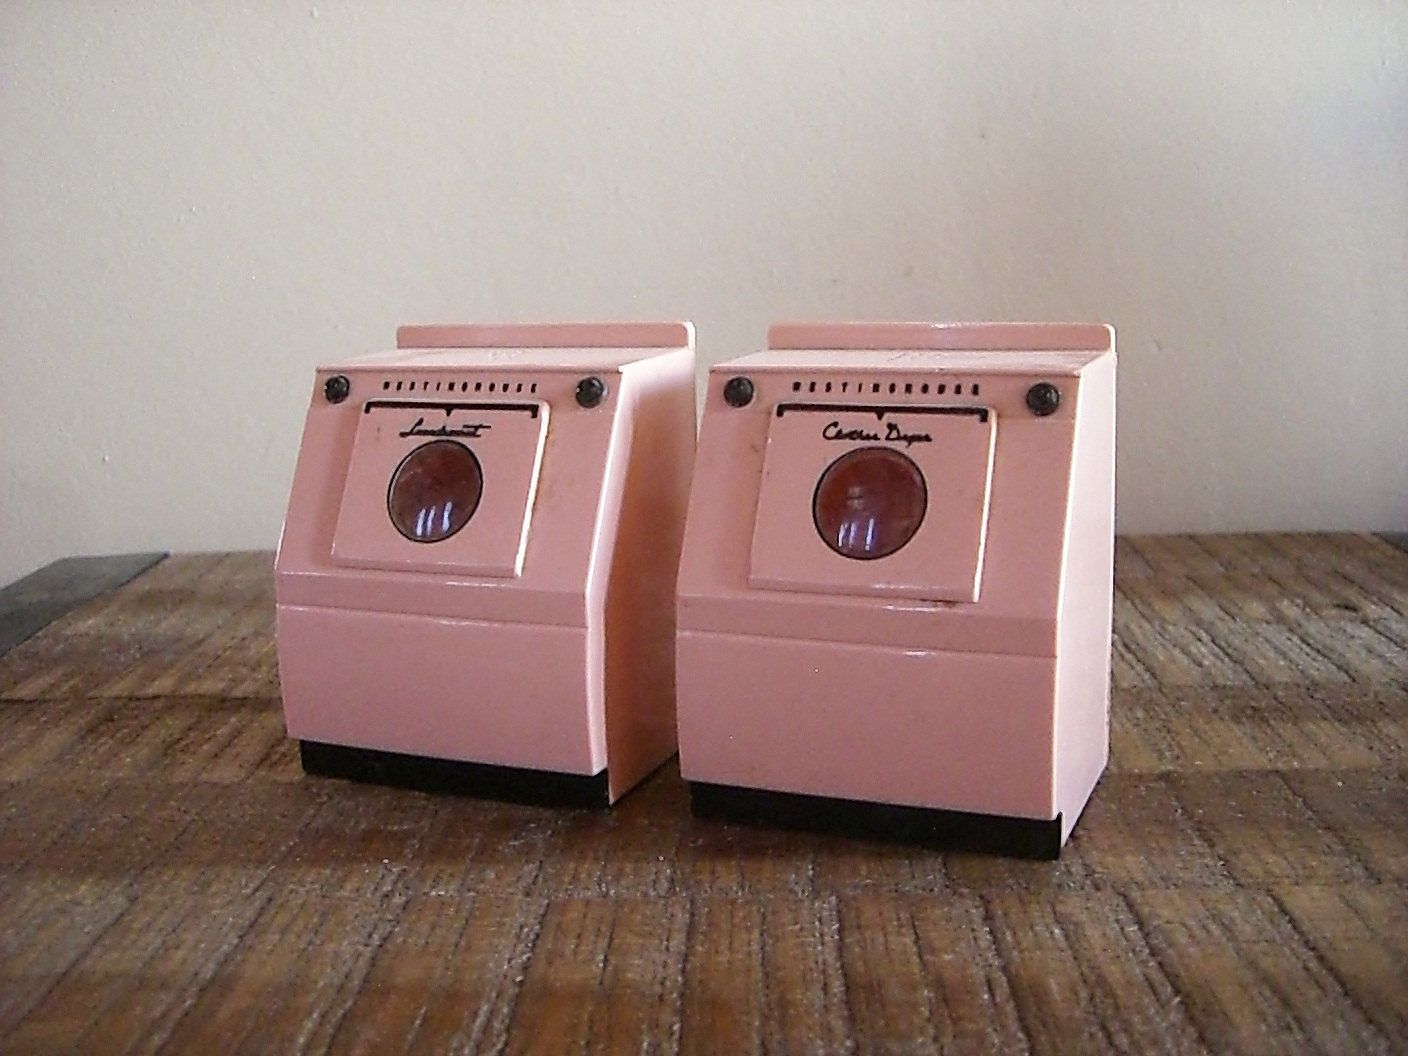 Washer And Dryer Vintage Pink Washer And Dryer Salt And Pepper Shaker